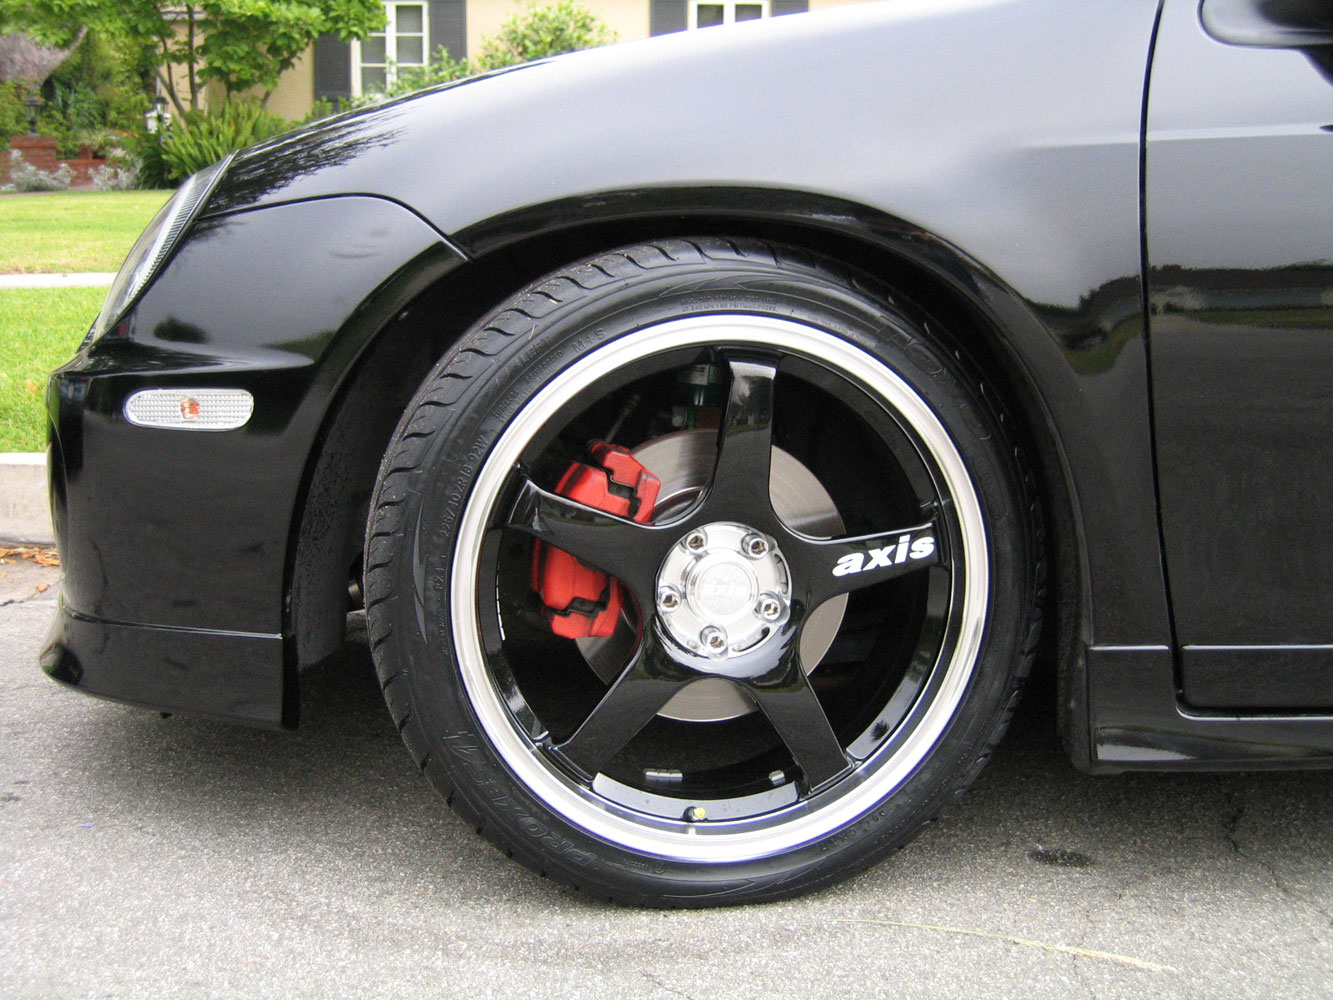 The SRT-4 WHEEL GALLERY (over 2000 PICS!!!) updated 06/04/11-axis-srt-7.jpg